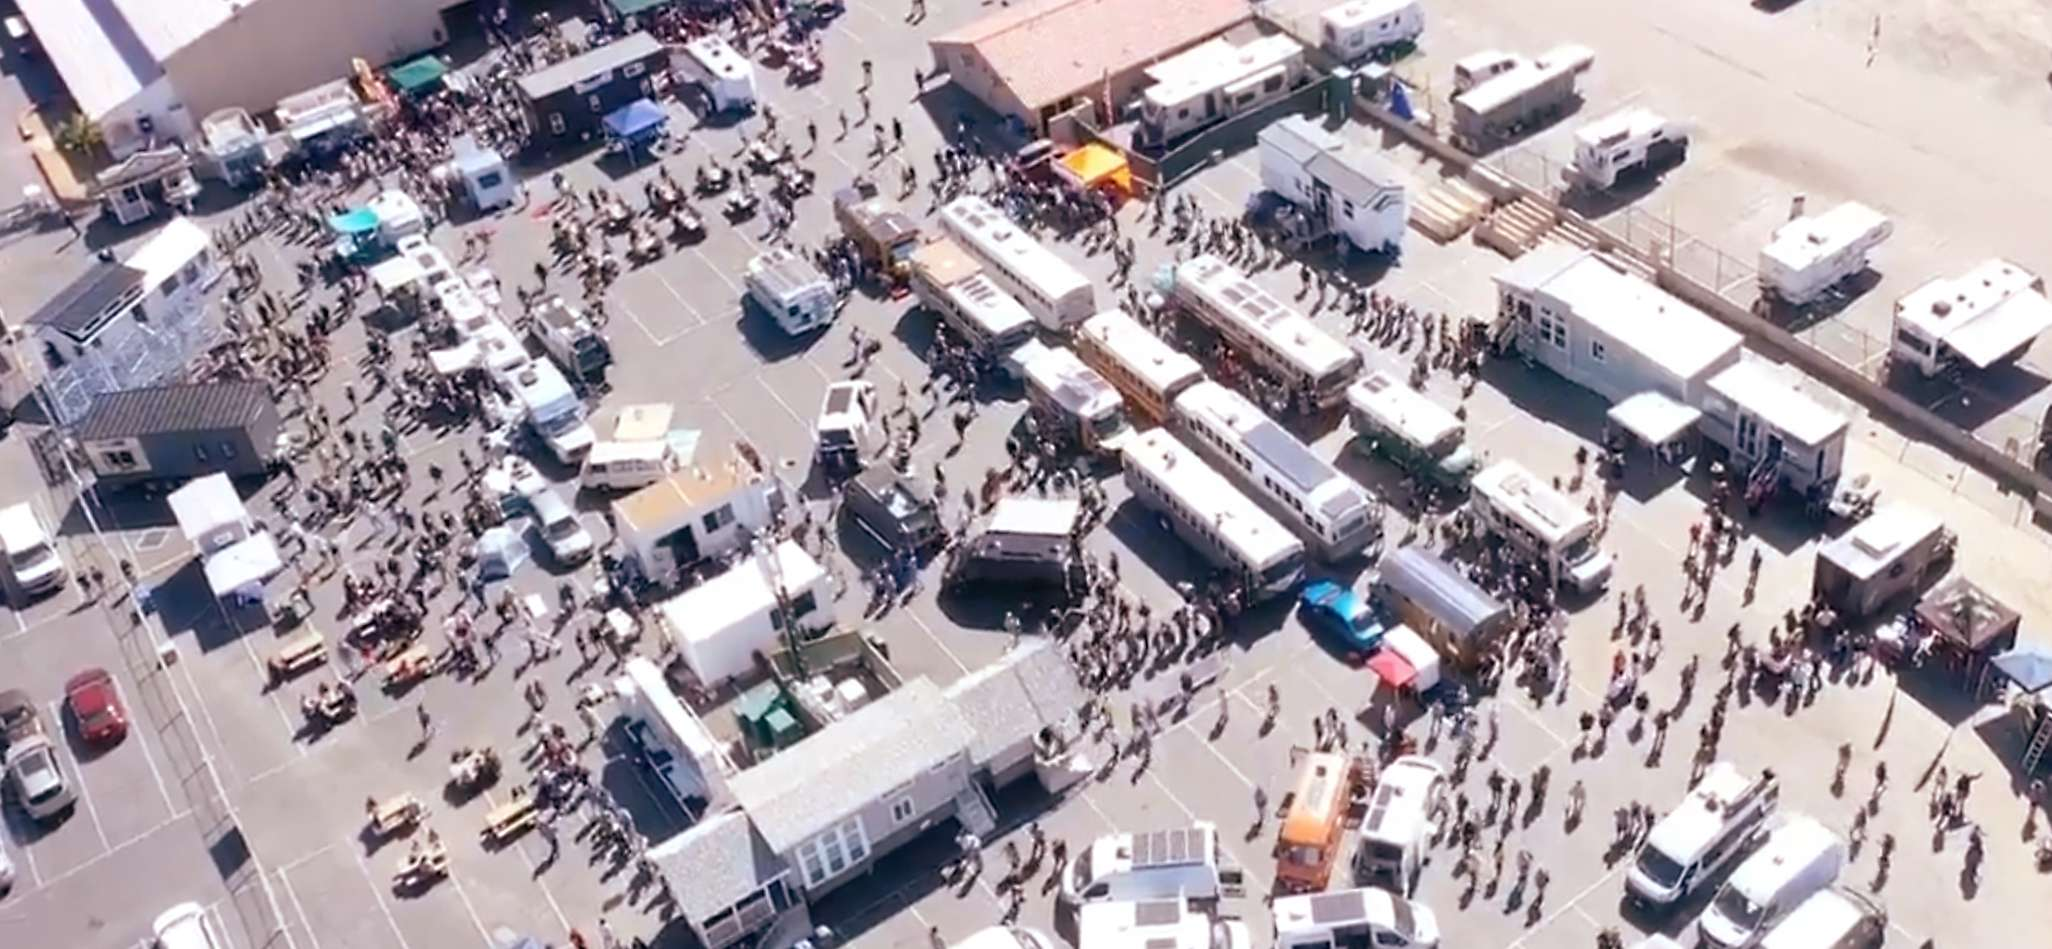 aerial view of an exhibit of tiny houses, vans & school buses